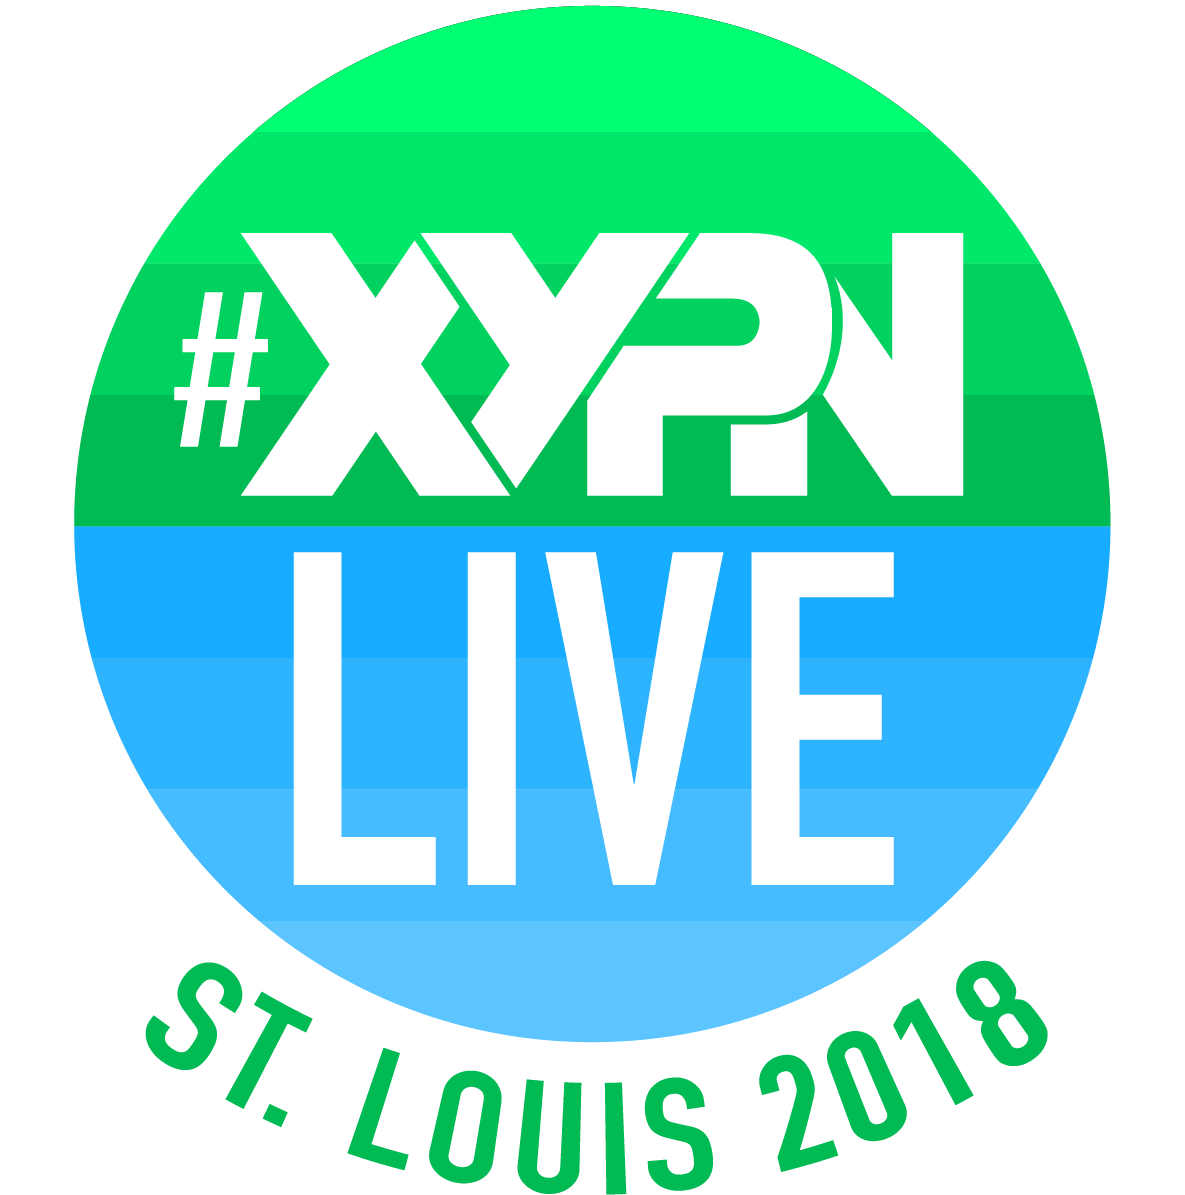 xypn_LIVE-transparent.png